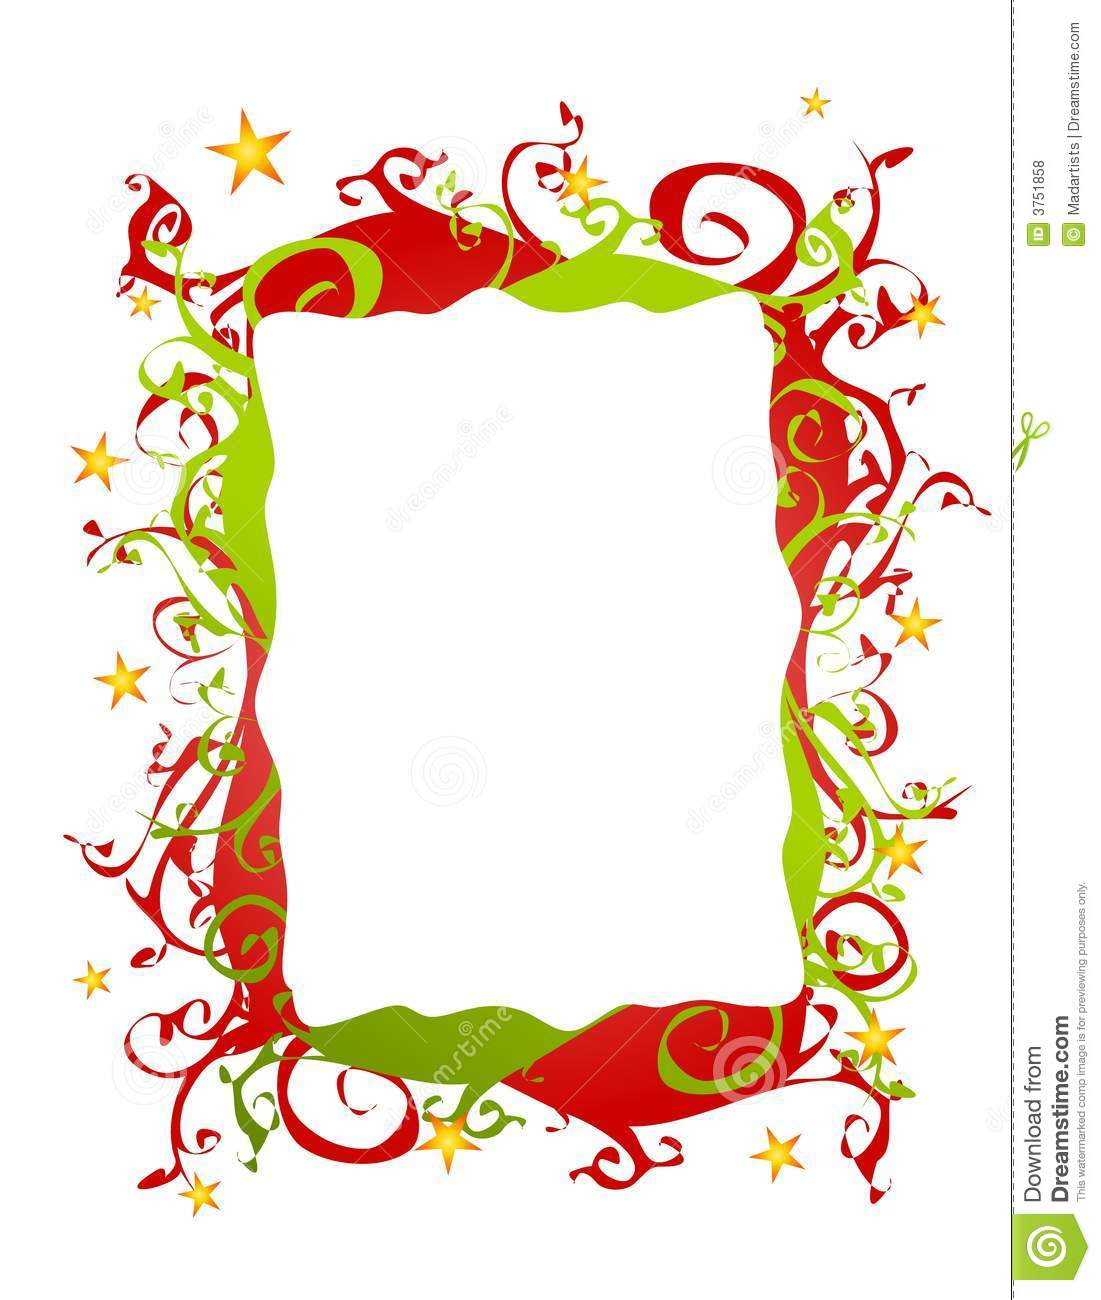 hight resolution of christma border clipart free